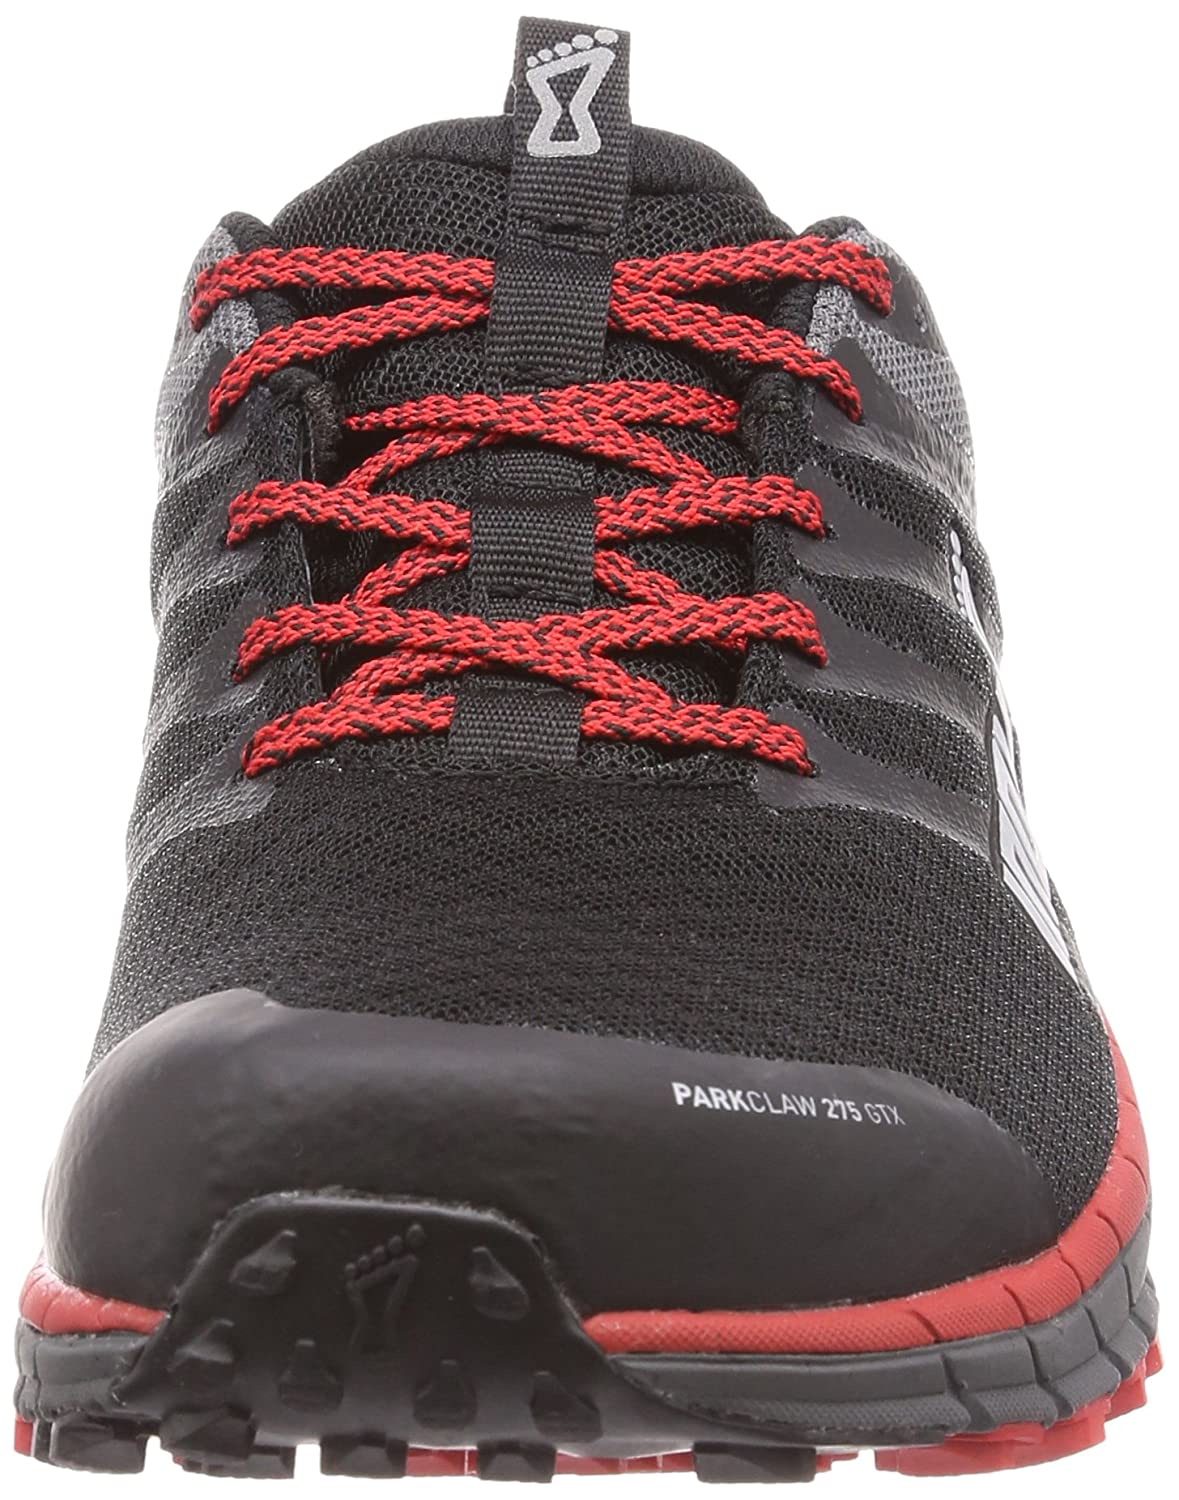 info for af196 ea91a Inov8 Park Claw 275 Gore-Tex Running Shoes  Amazon.co.uk  Shoes   Bags